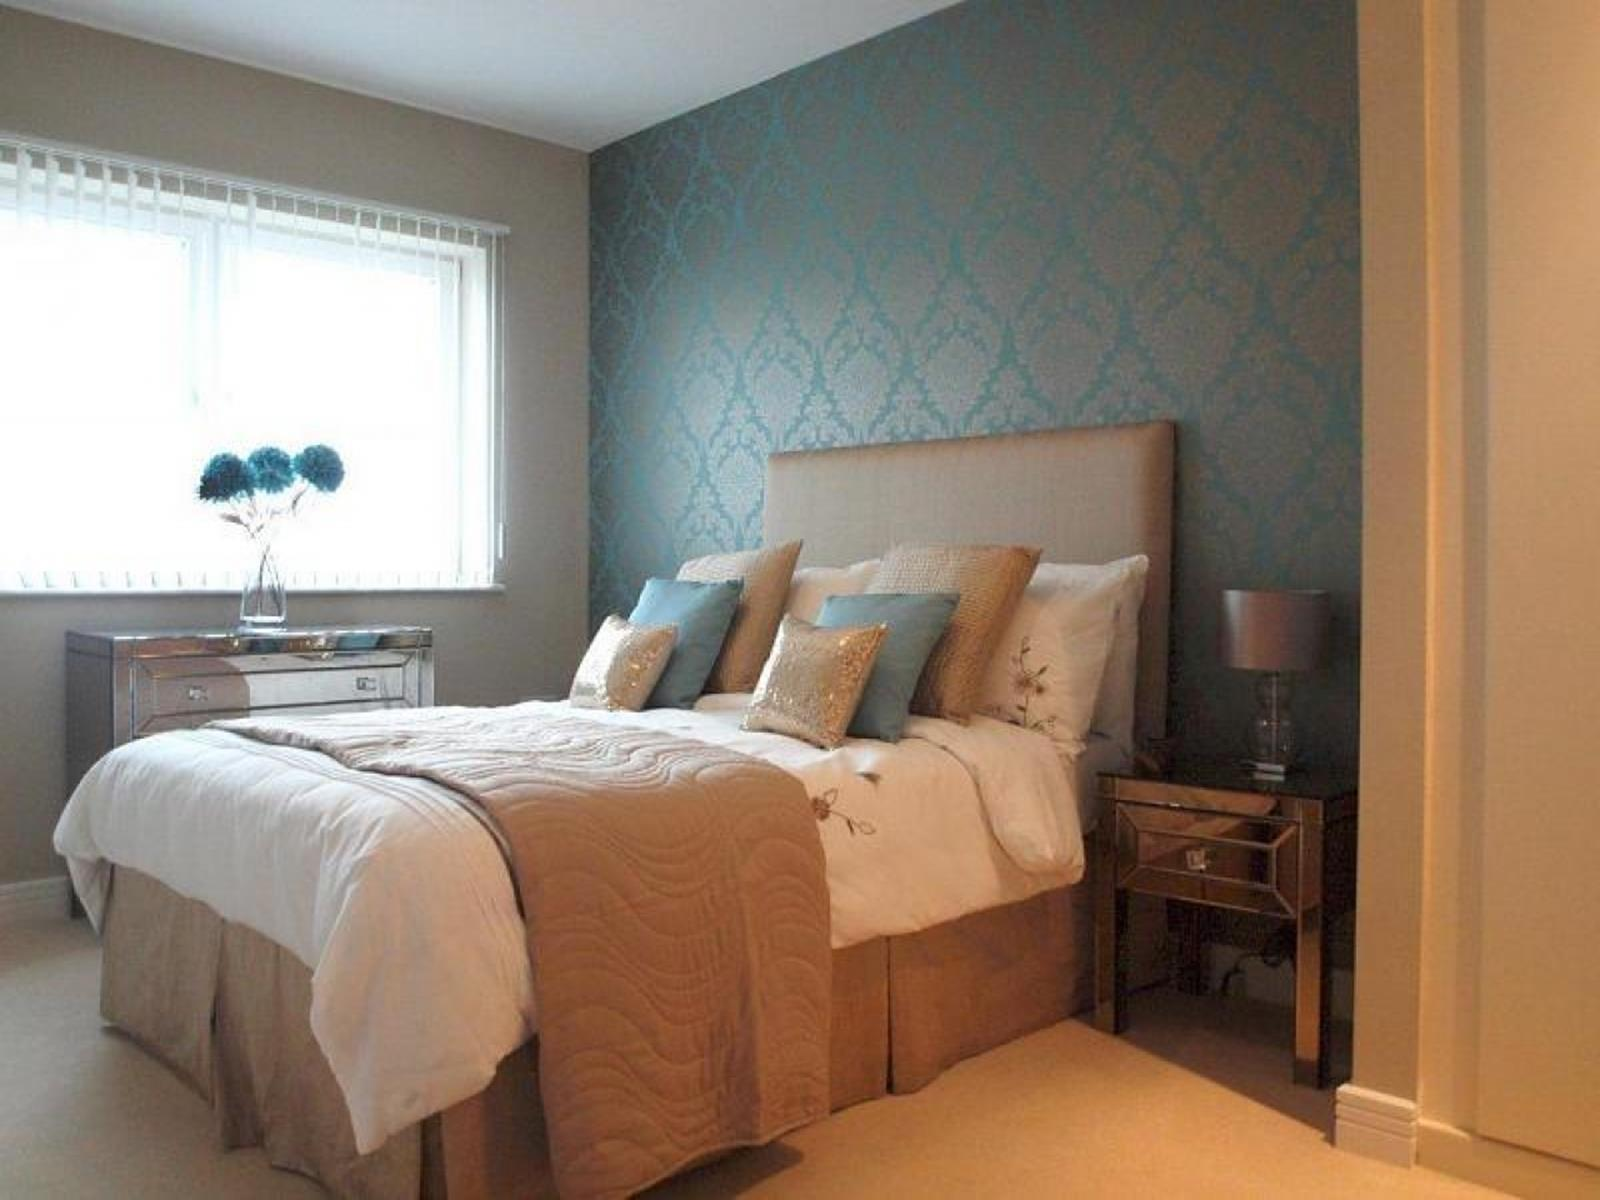 37 Charming Blue And Beige Bedrooms Decorating Ideas - DecoRelated